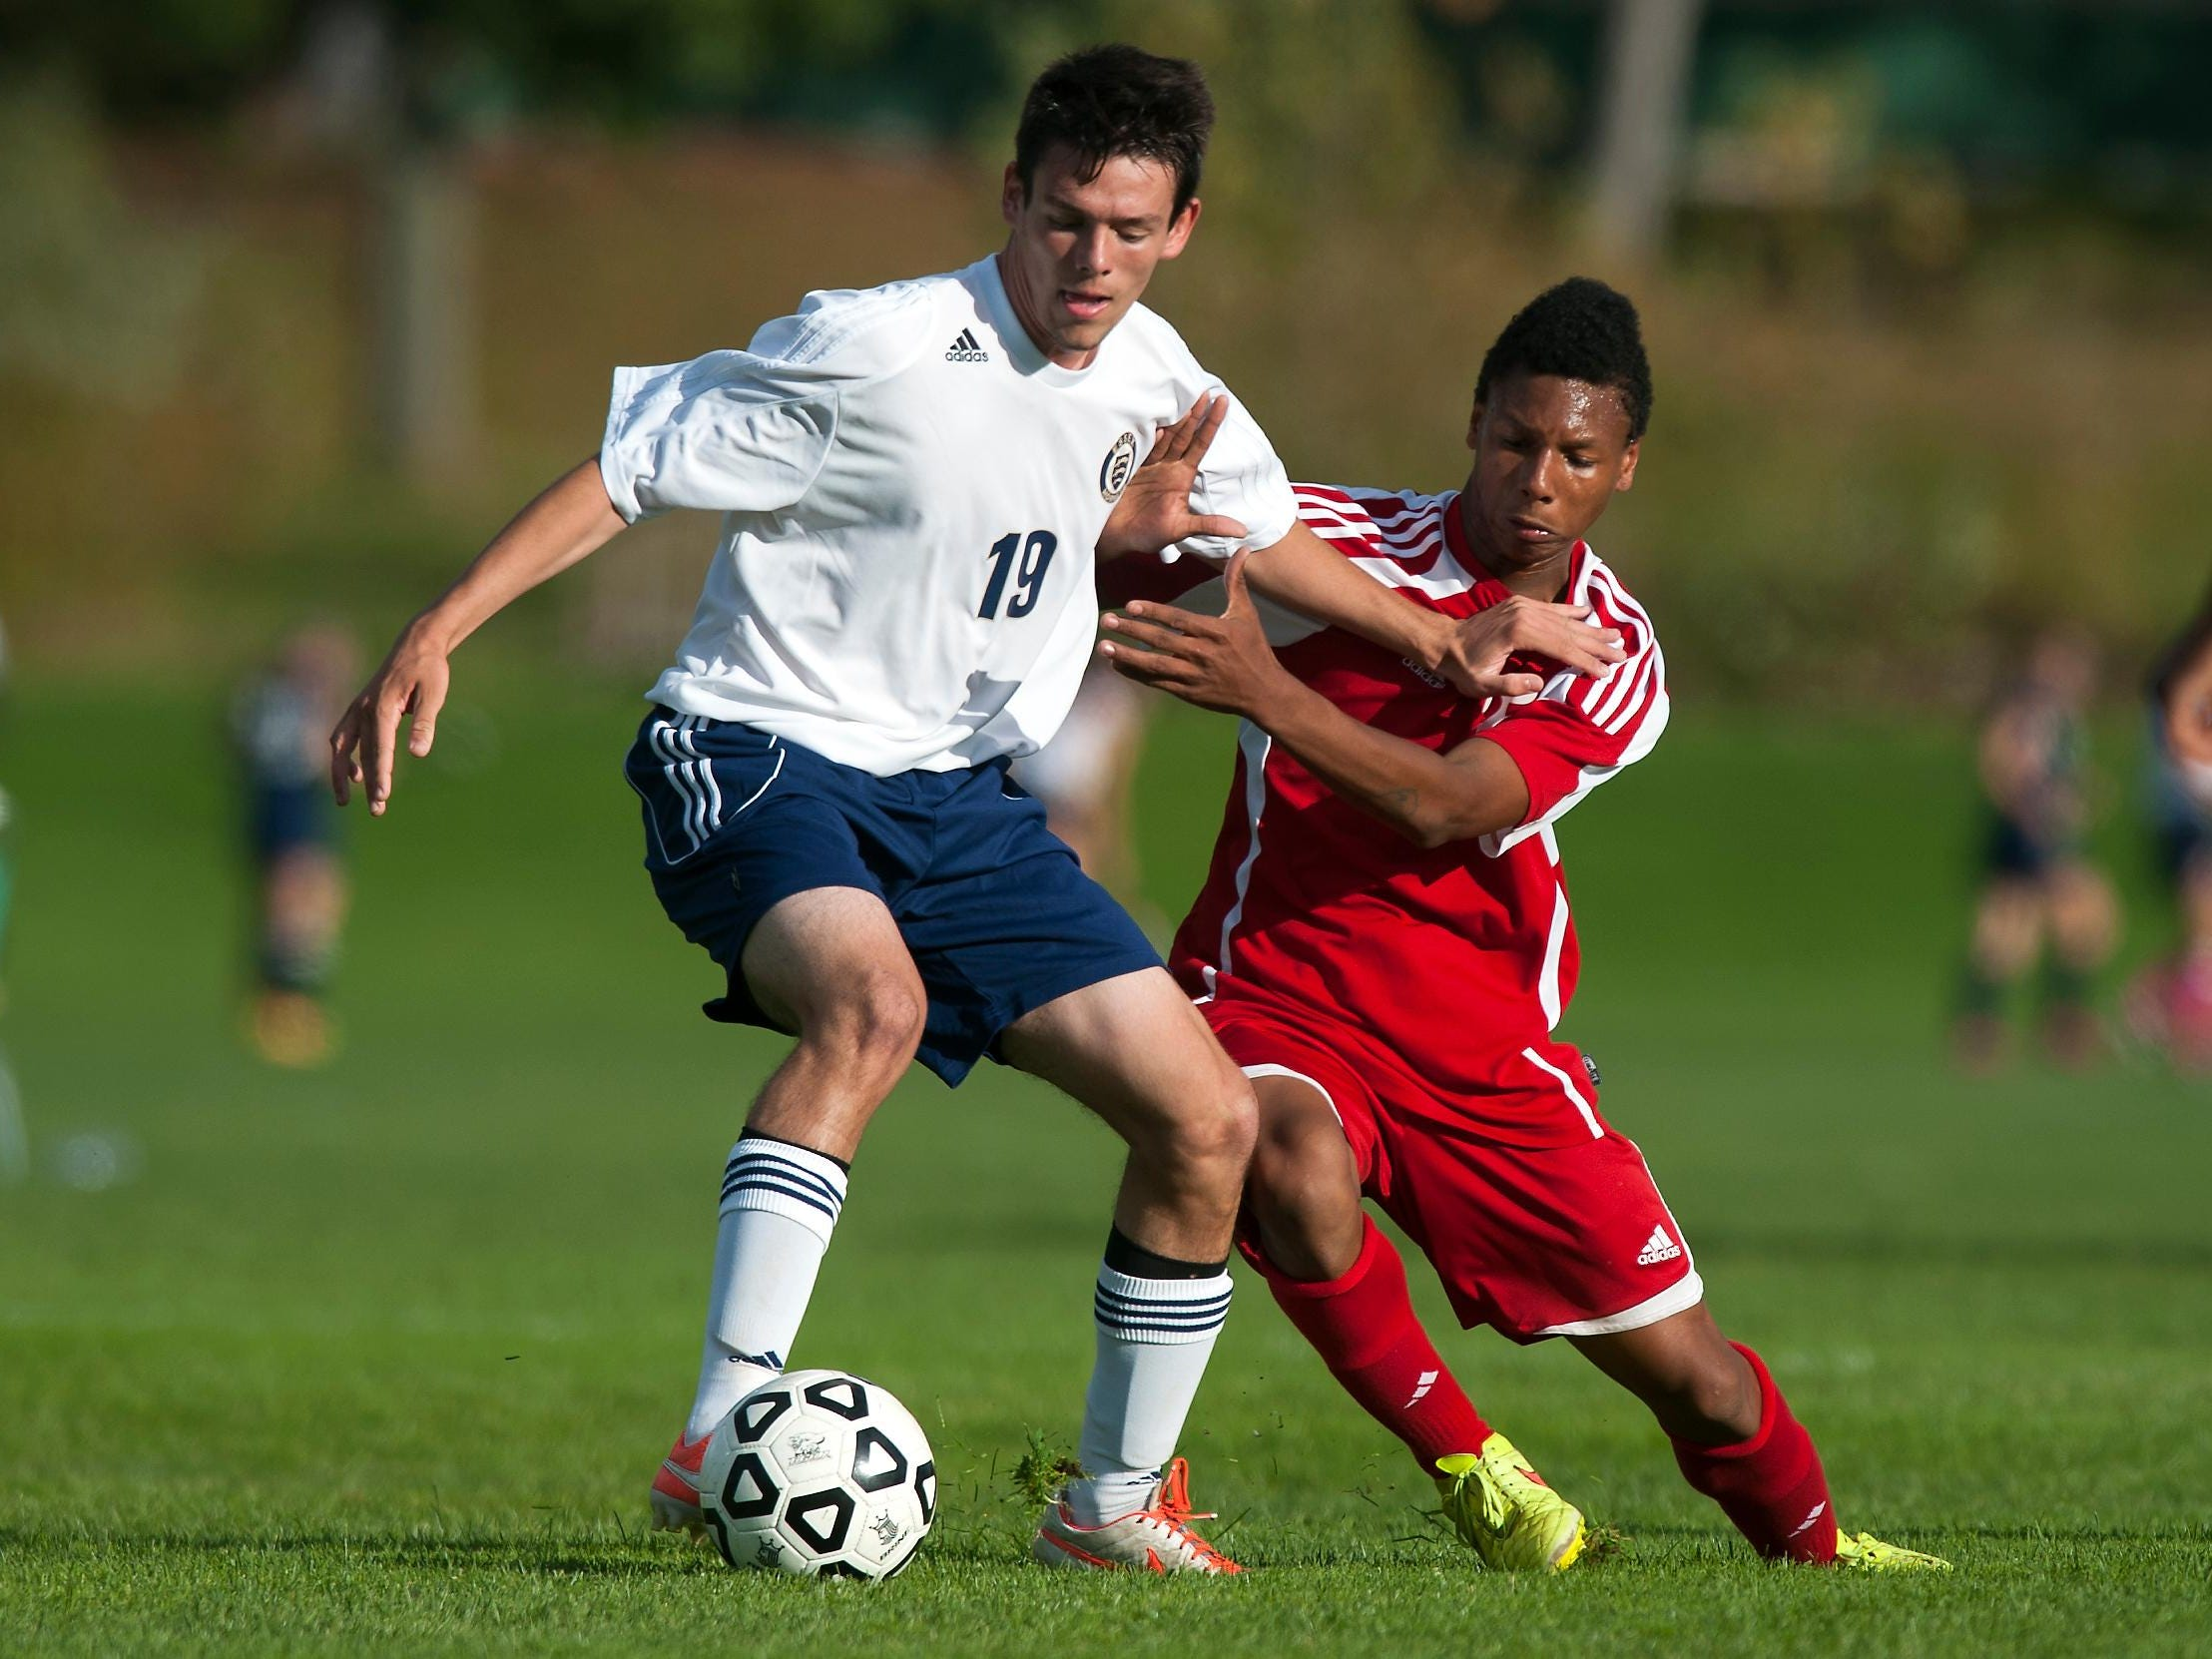 CVU's Trey Tomasi, right, battles for the ball with Essex's Danilo Salgado during a high school boys soccer game in 2014.